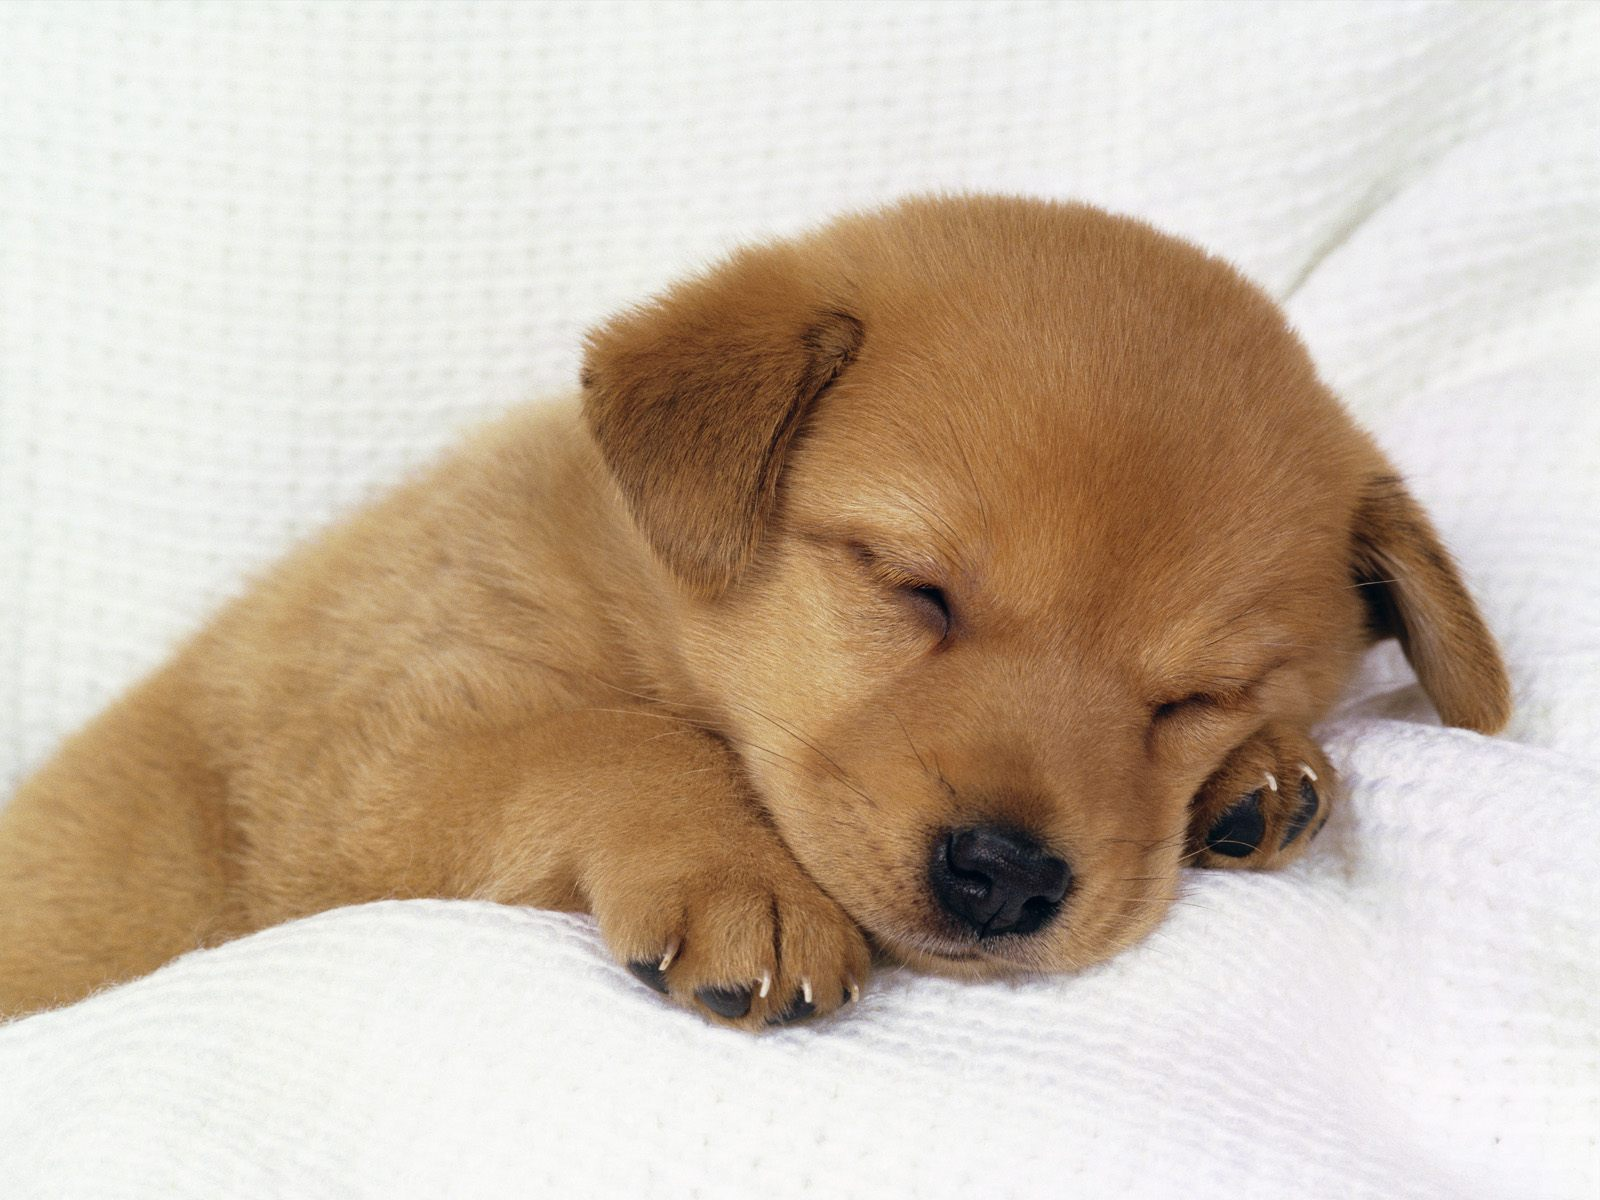 Little Puppy background cute puppy wallpaper funny dog wallpaper 1600x1200